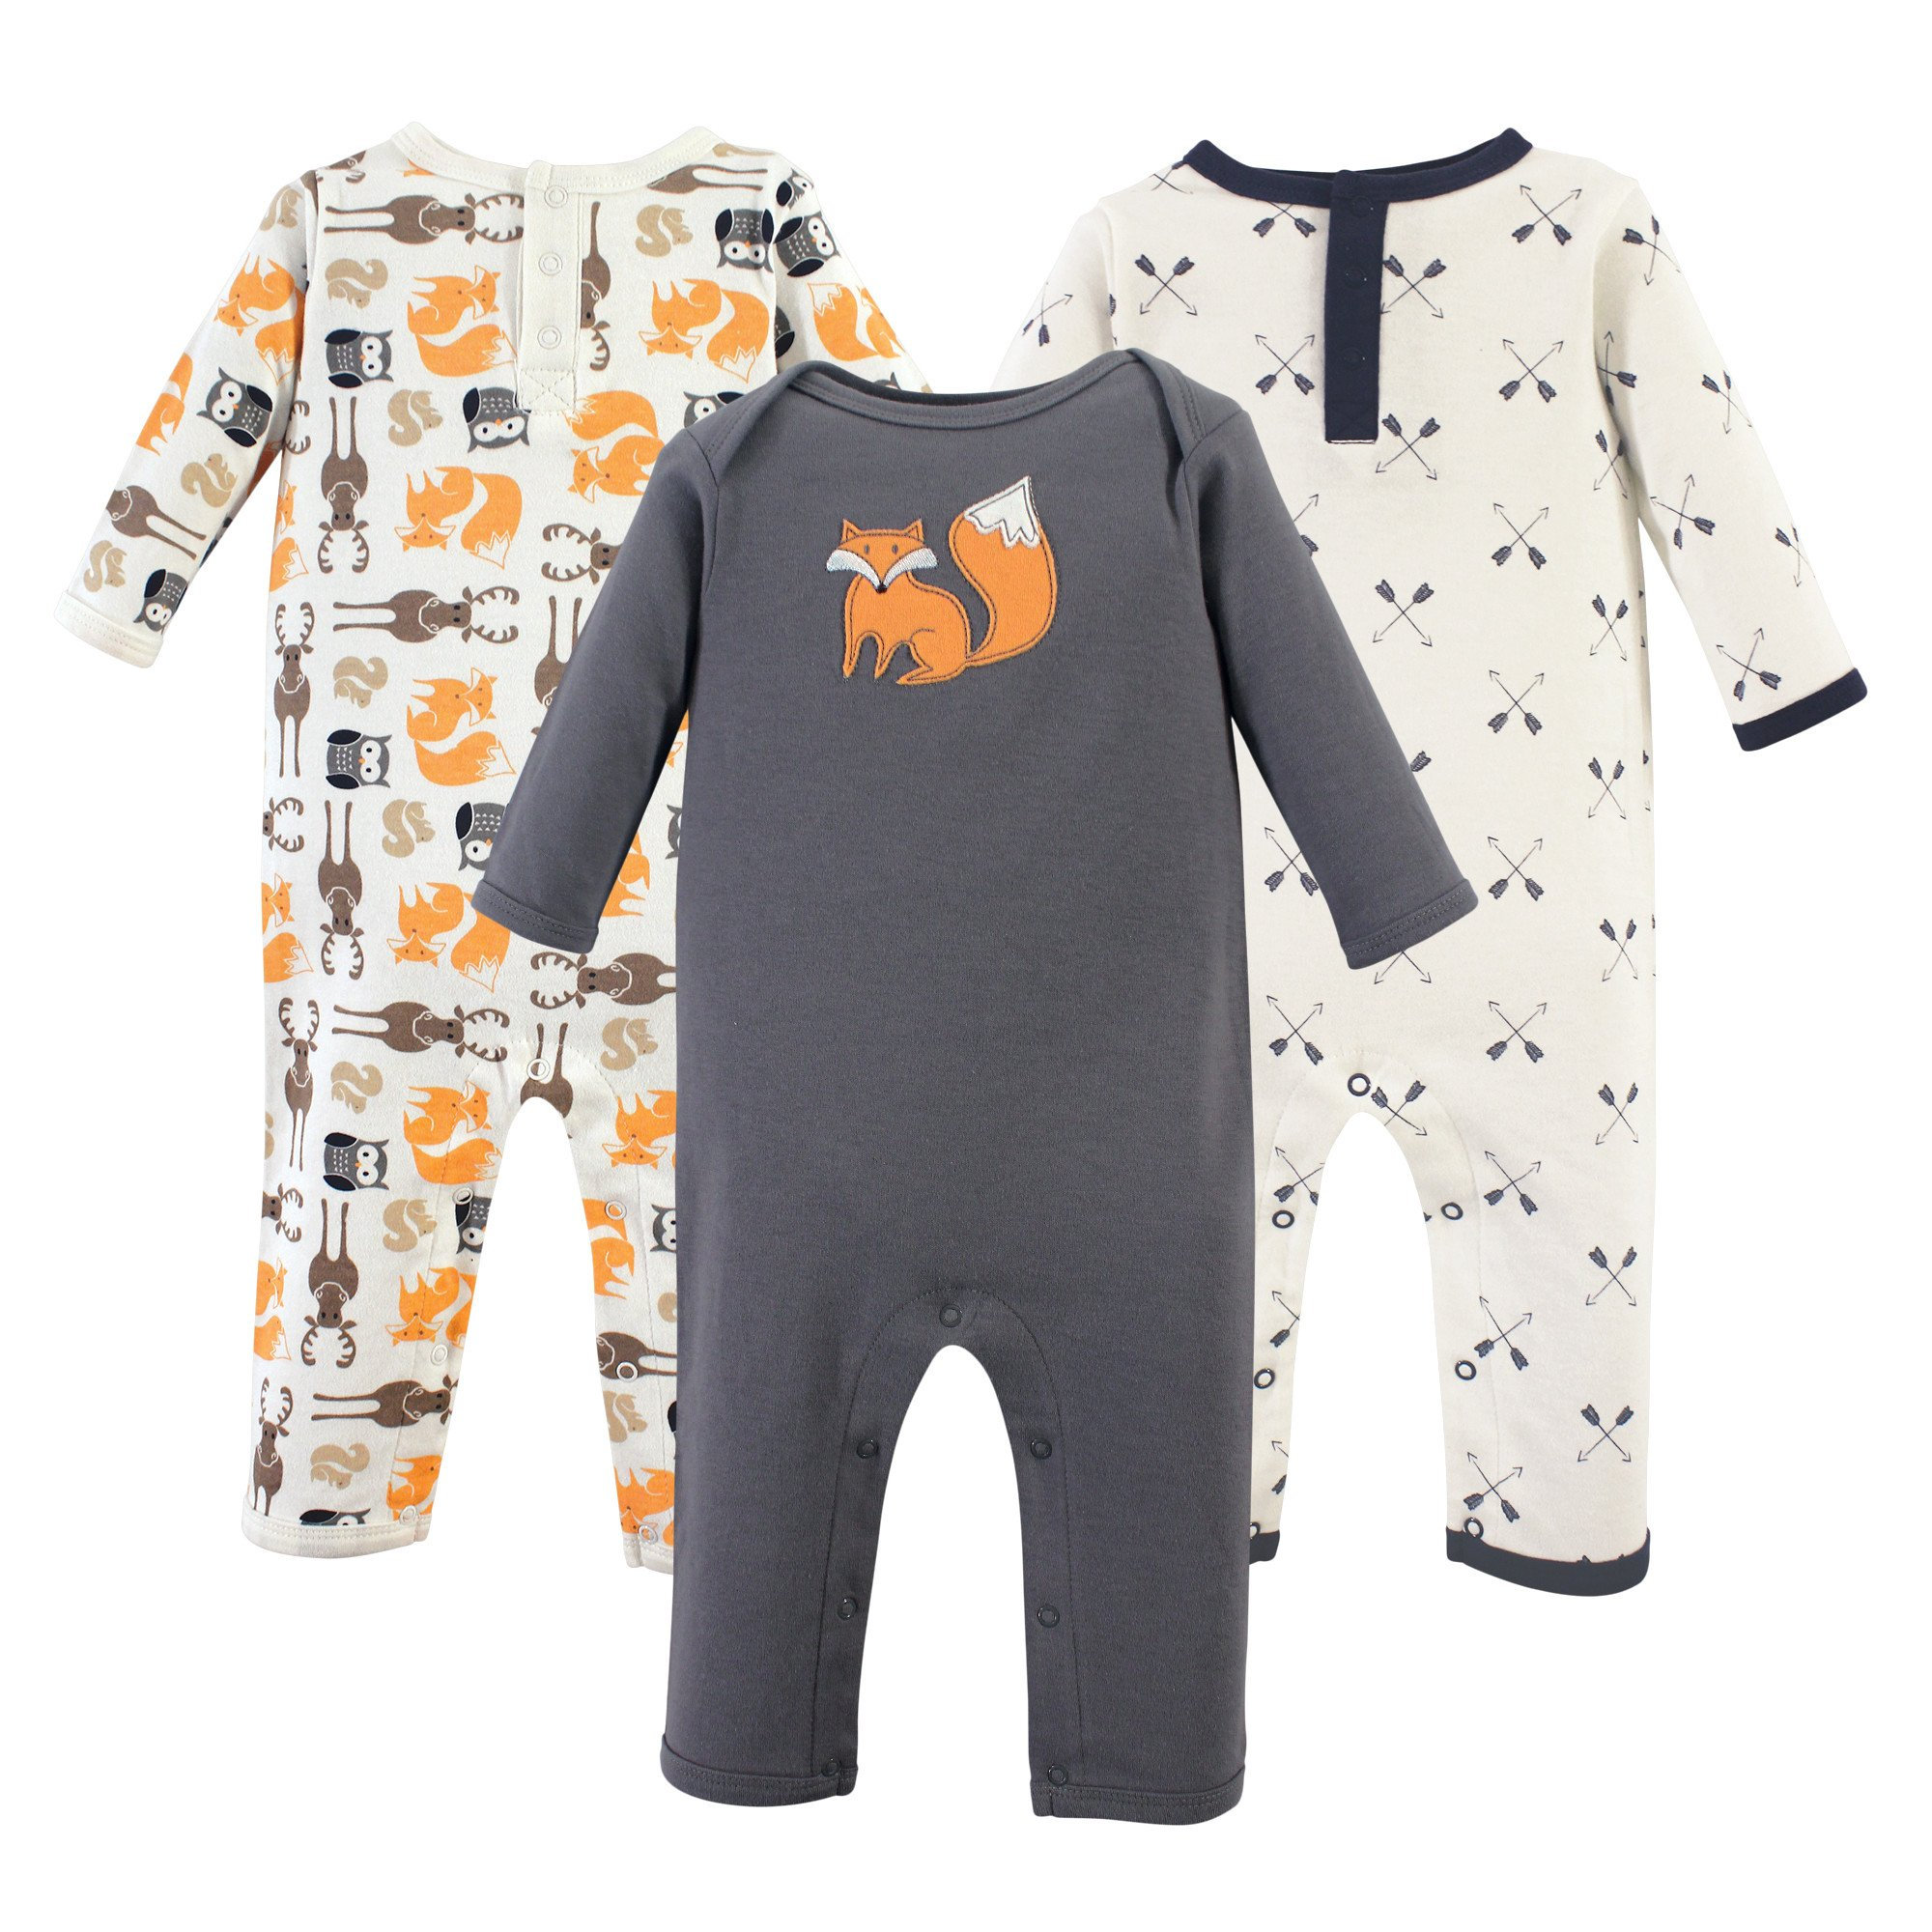 Hudson Baby Baby Cotton Union Suit, 3 Pack, Forest, 9 Months